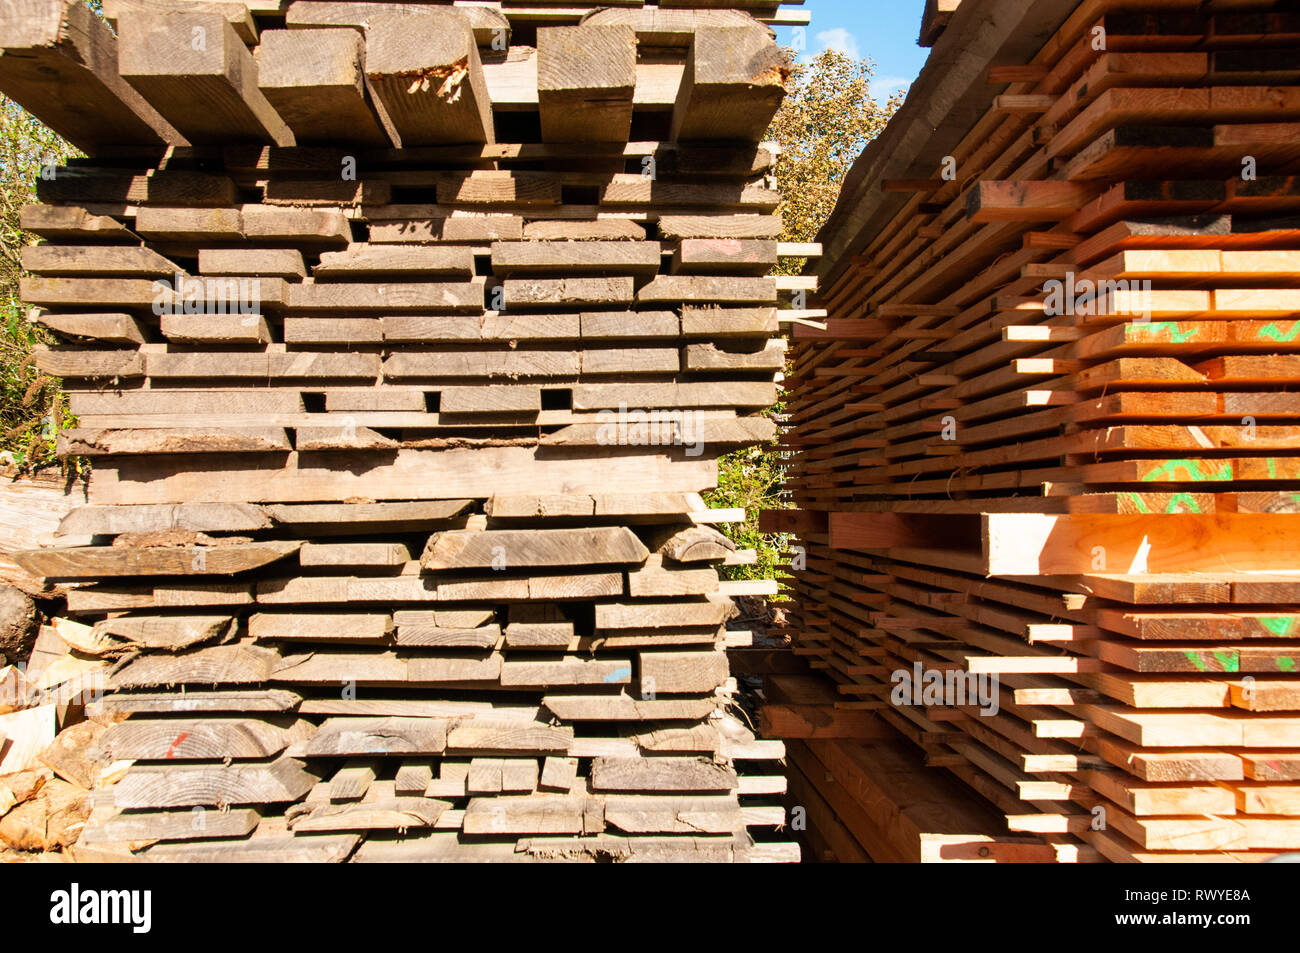 Lengths of timber stacked in yard, Cornwall - Stock Image